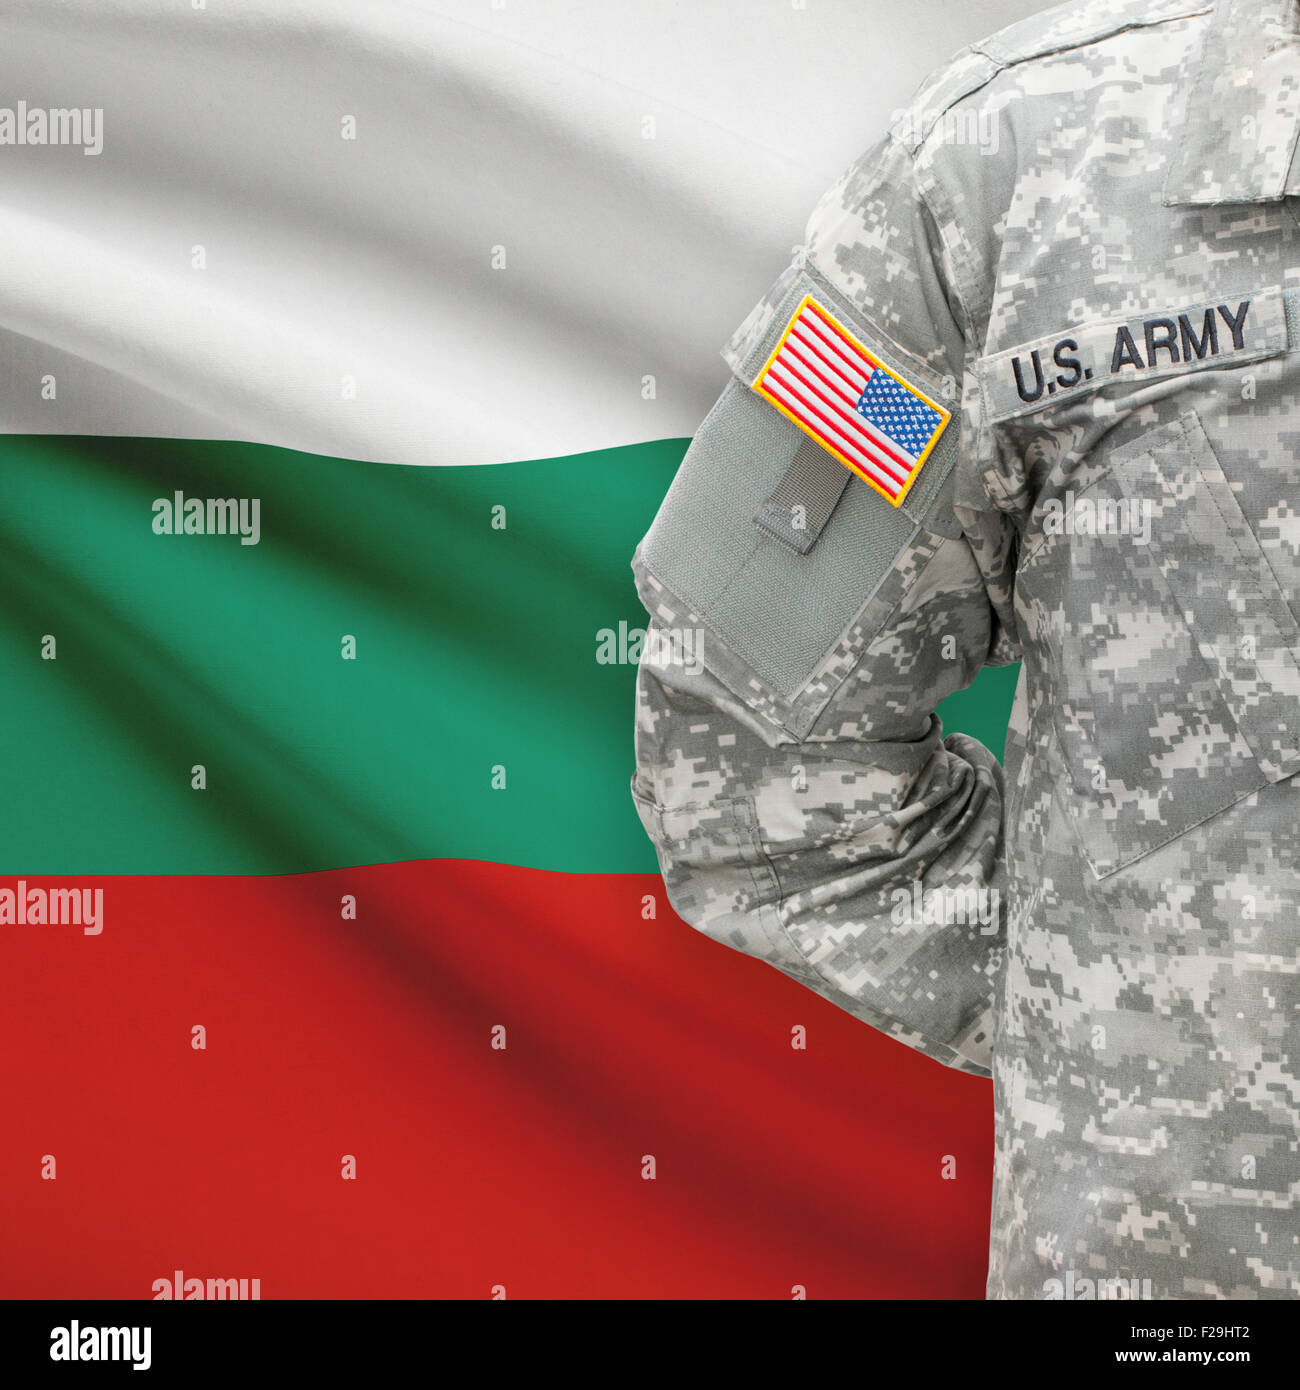 American soldier with flag on background series - Bulgaria Stock Photo